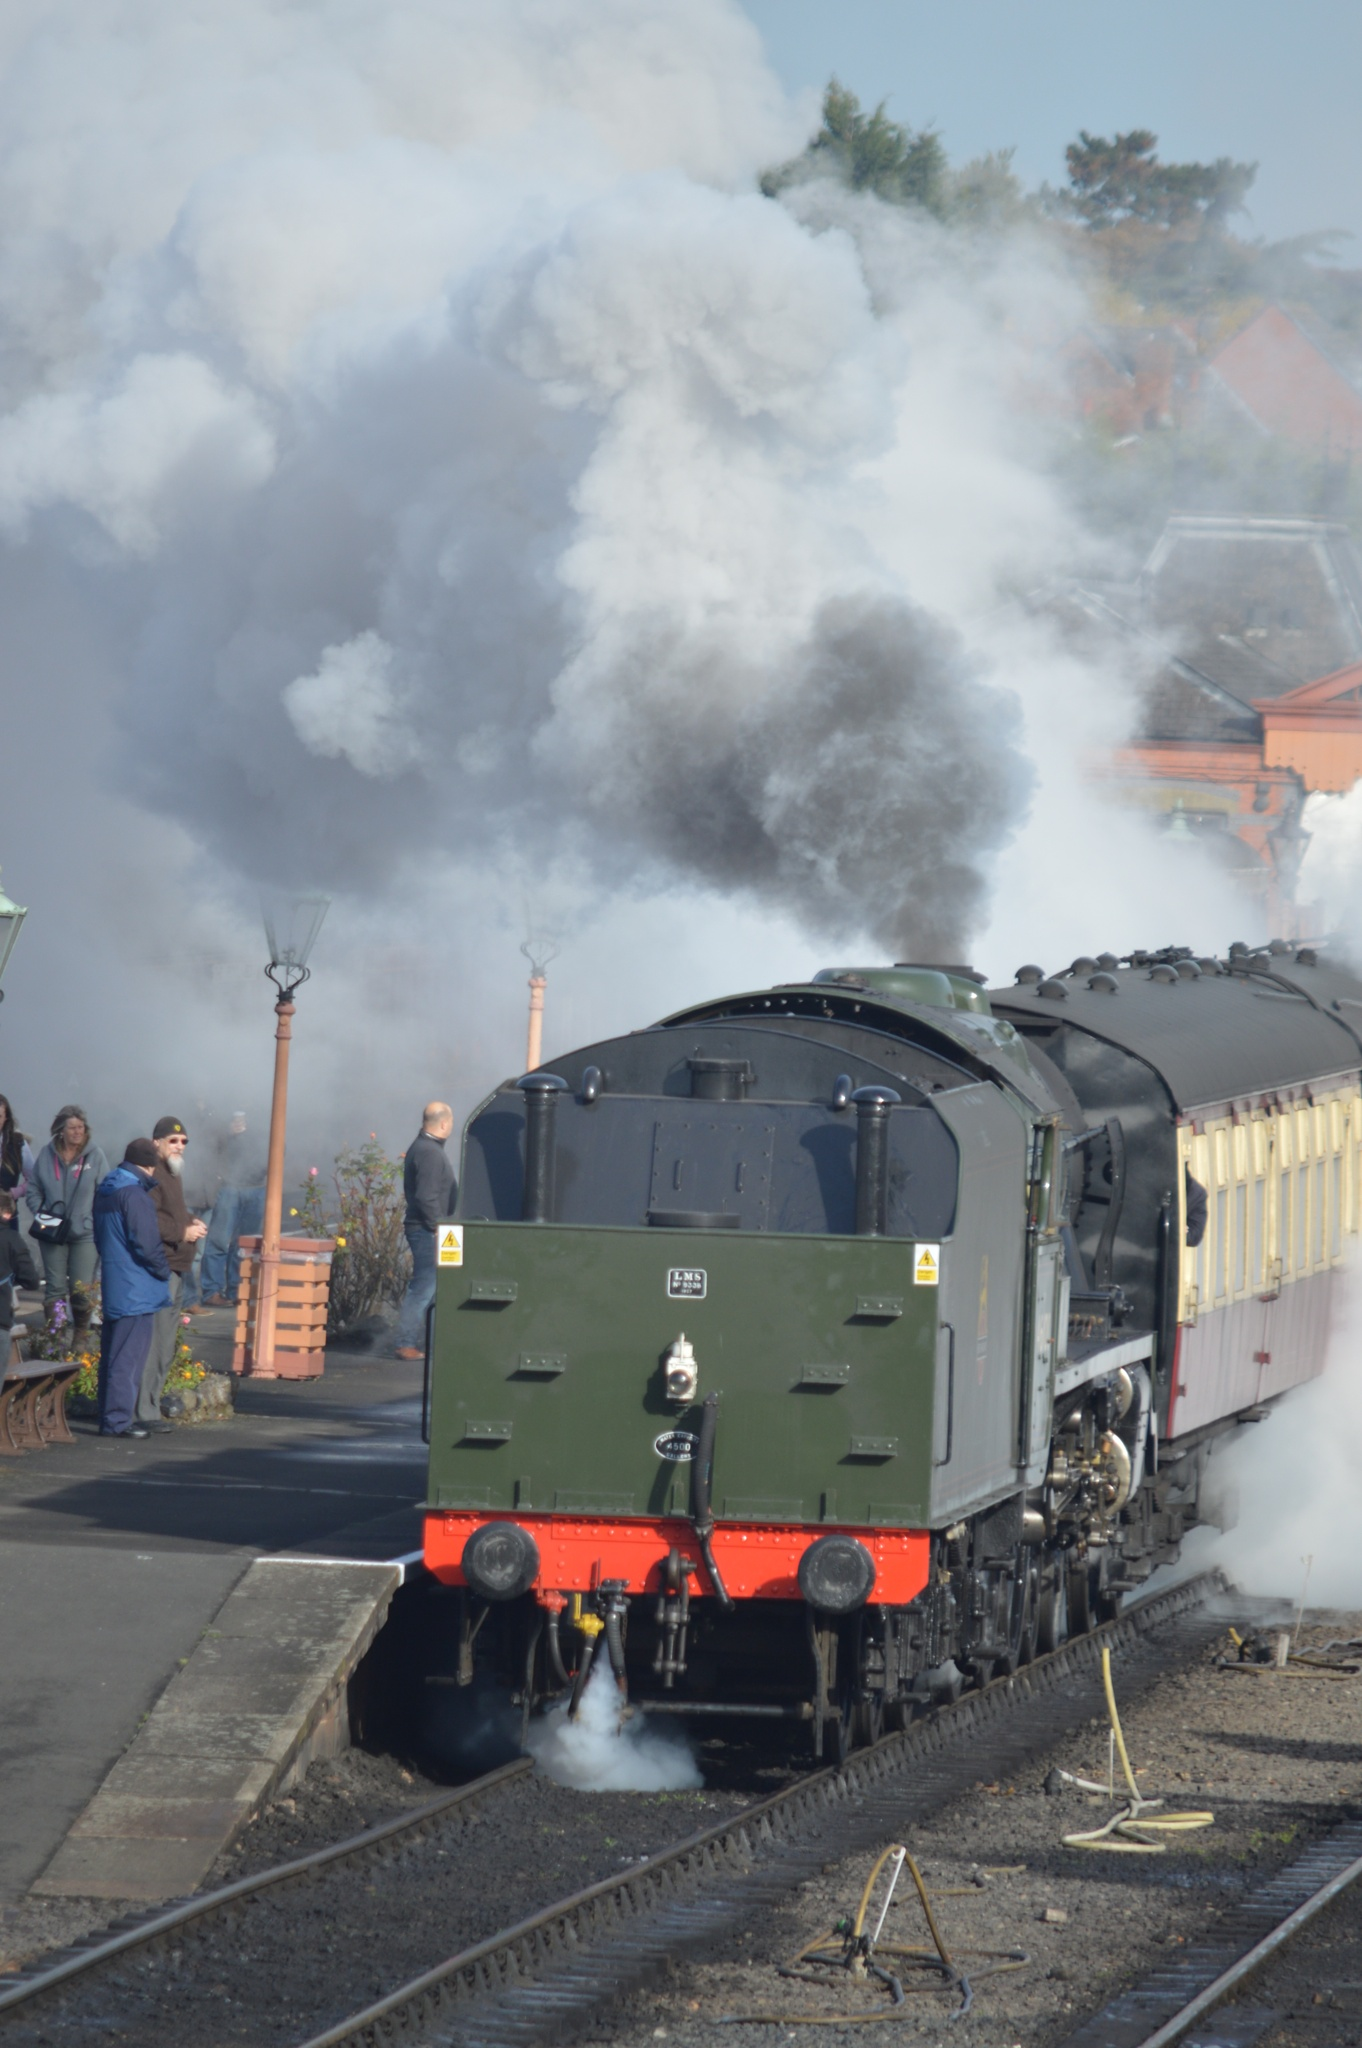 ROYAL SCOT AT KDDERMINSTER by adrian.williams.58323